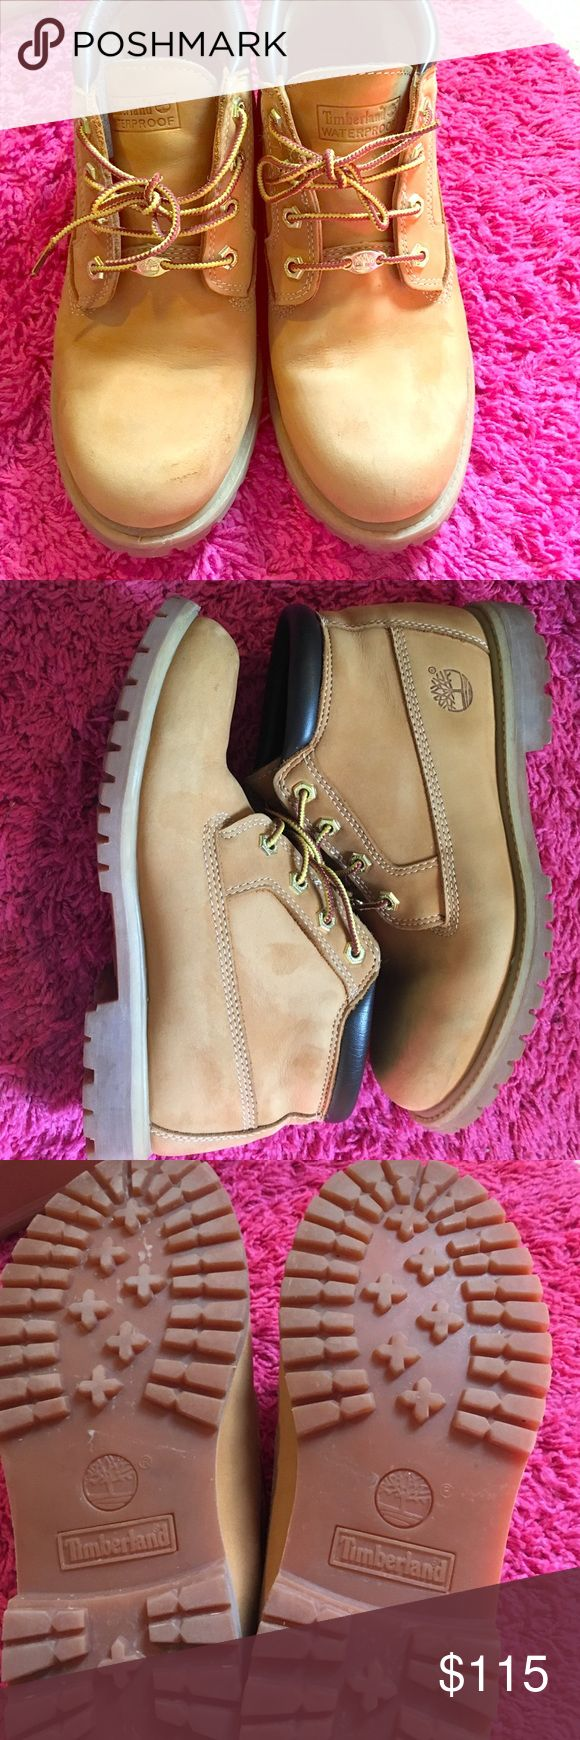 Timberland Boots Fashionable Work Boots Timberland Shoes Ankle Boots & Booties